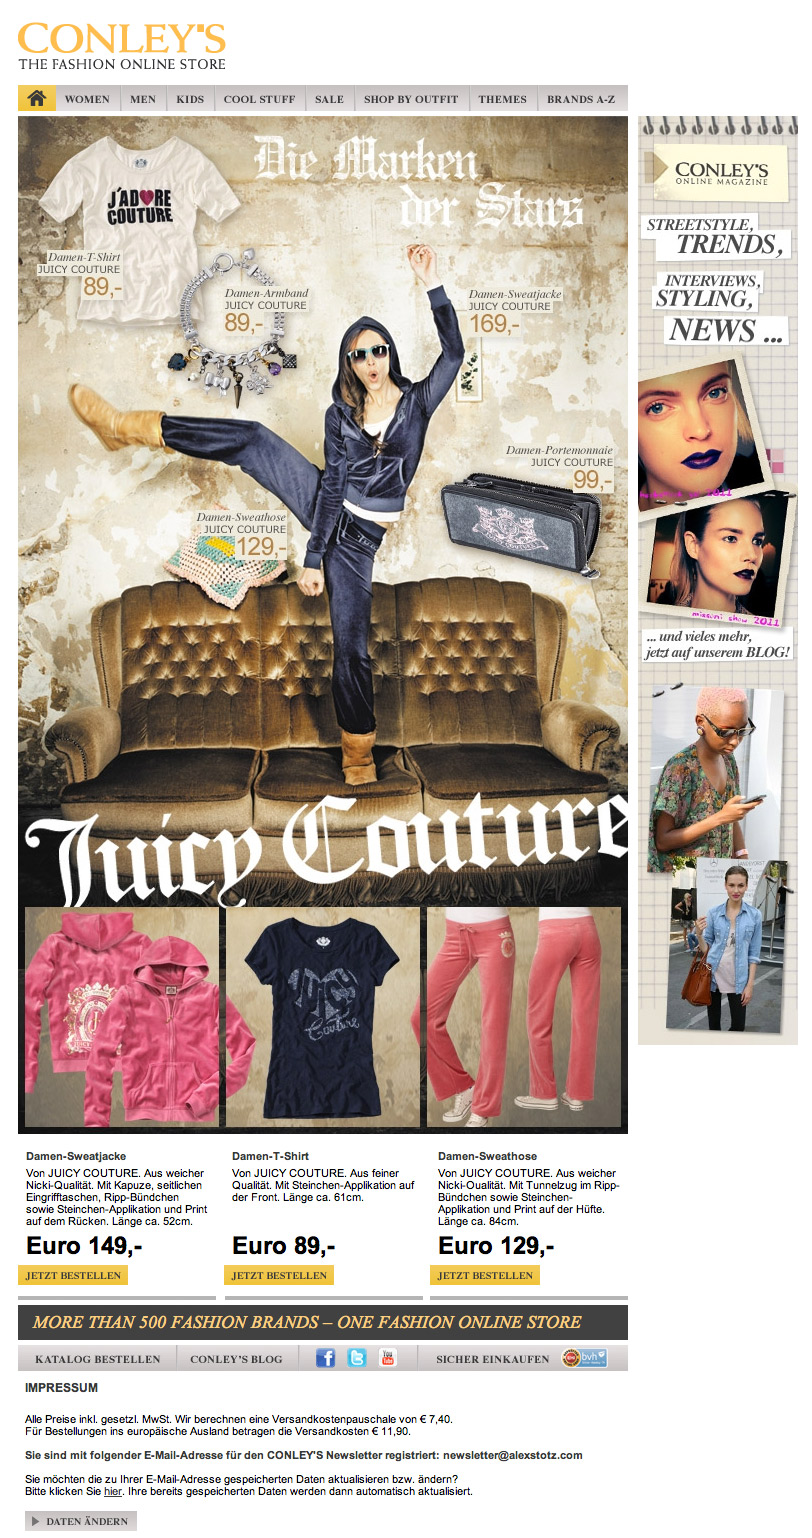 CONLEY'S - Juicy Couture